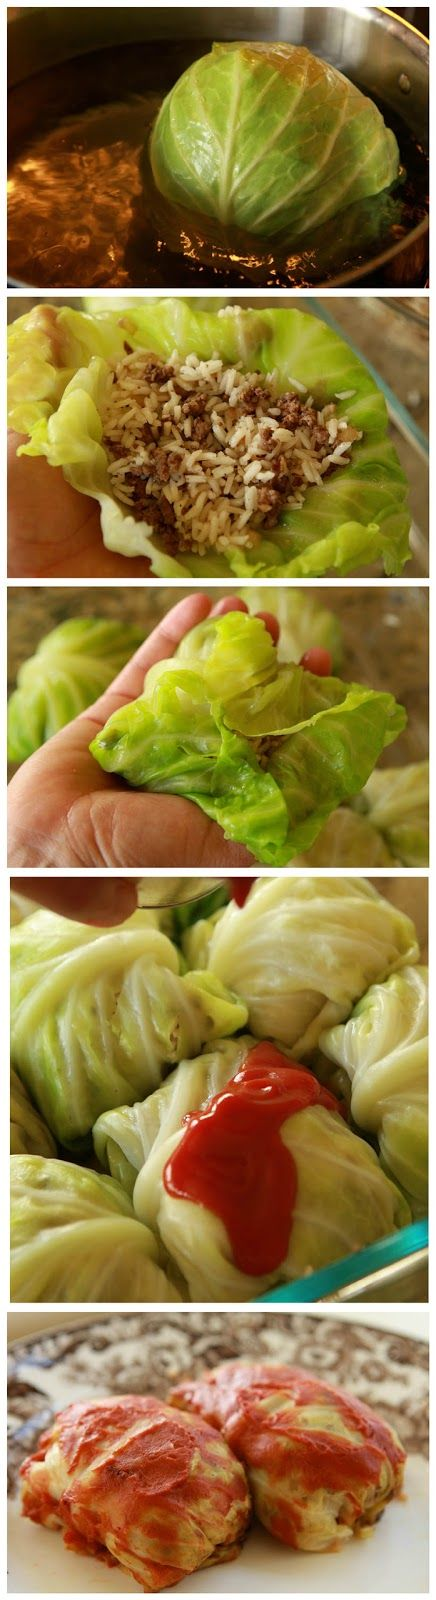 Start Recipes: Delicious Cabbage Rolls